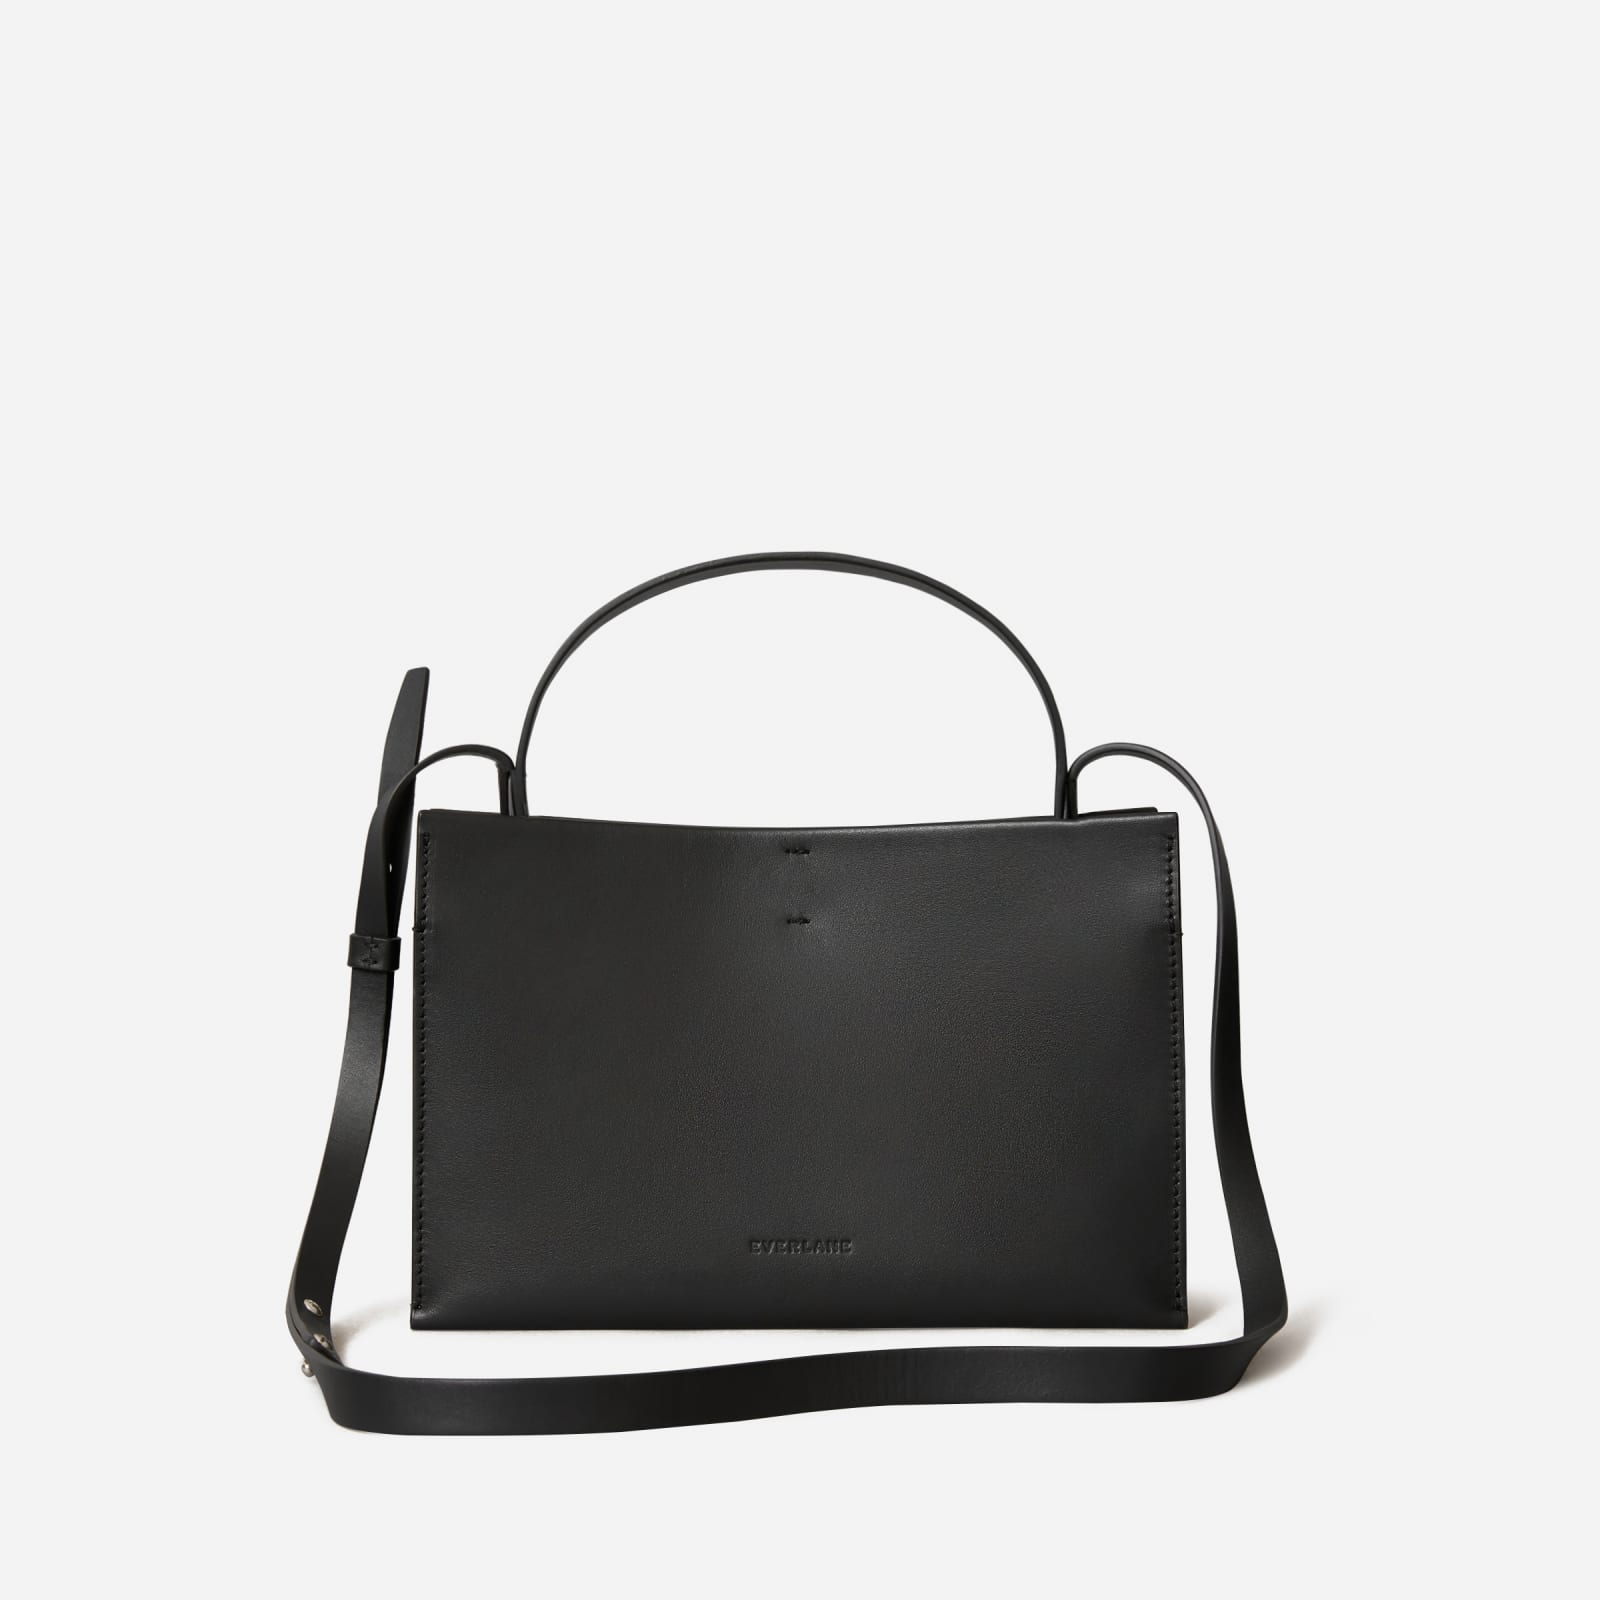 lunchbox bag by everlane in black